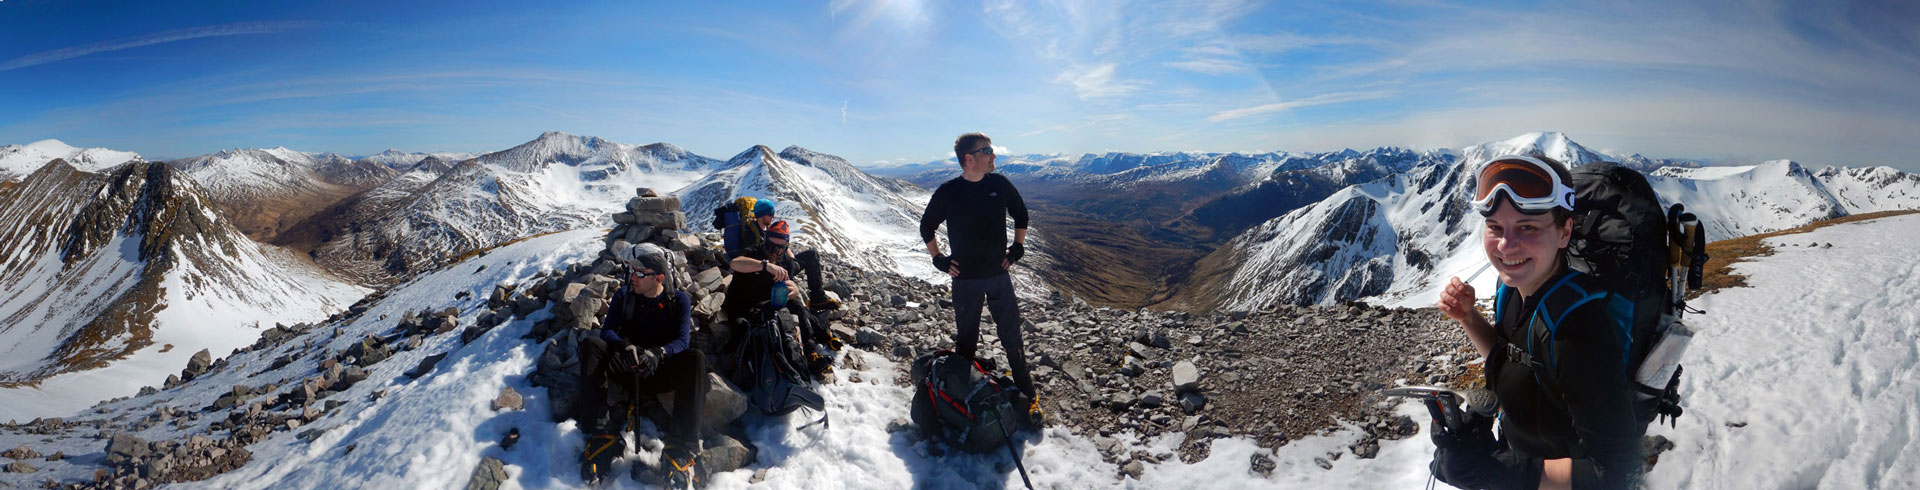 Panorama from Stob Coire a' Chairn